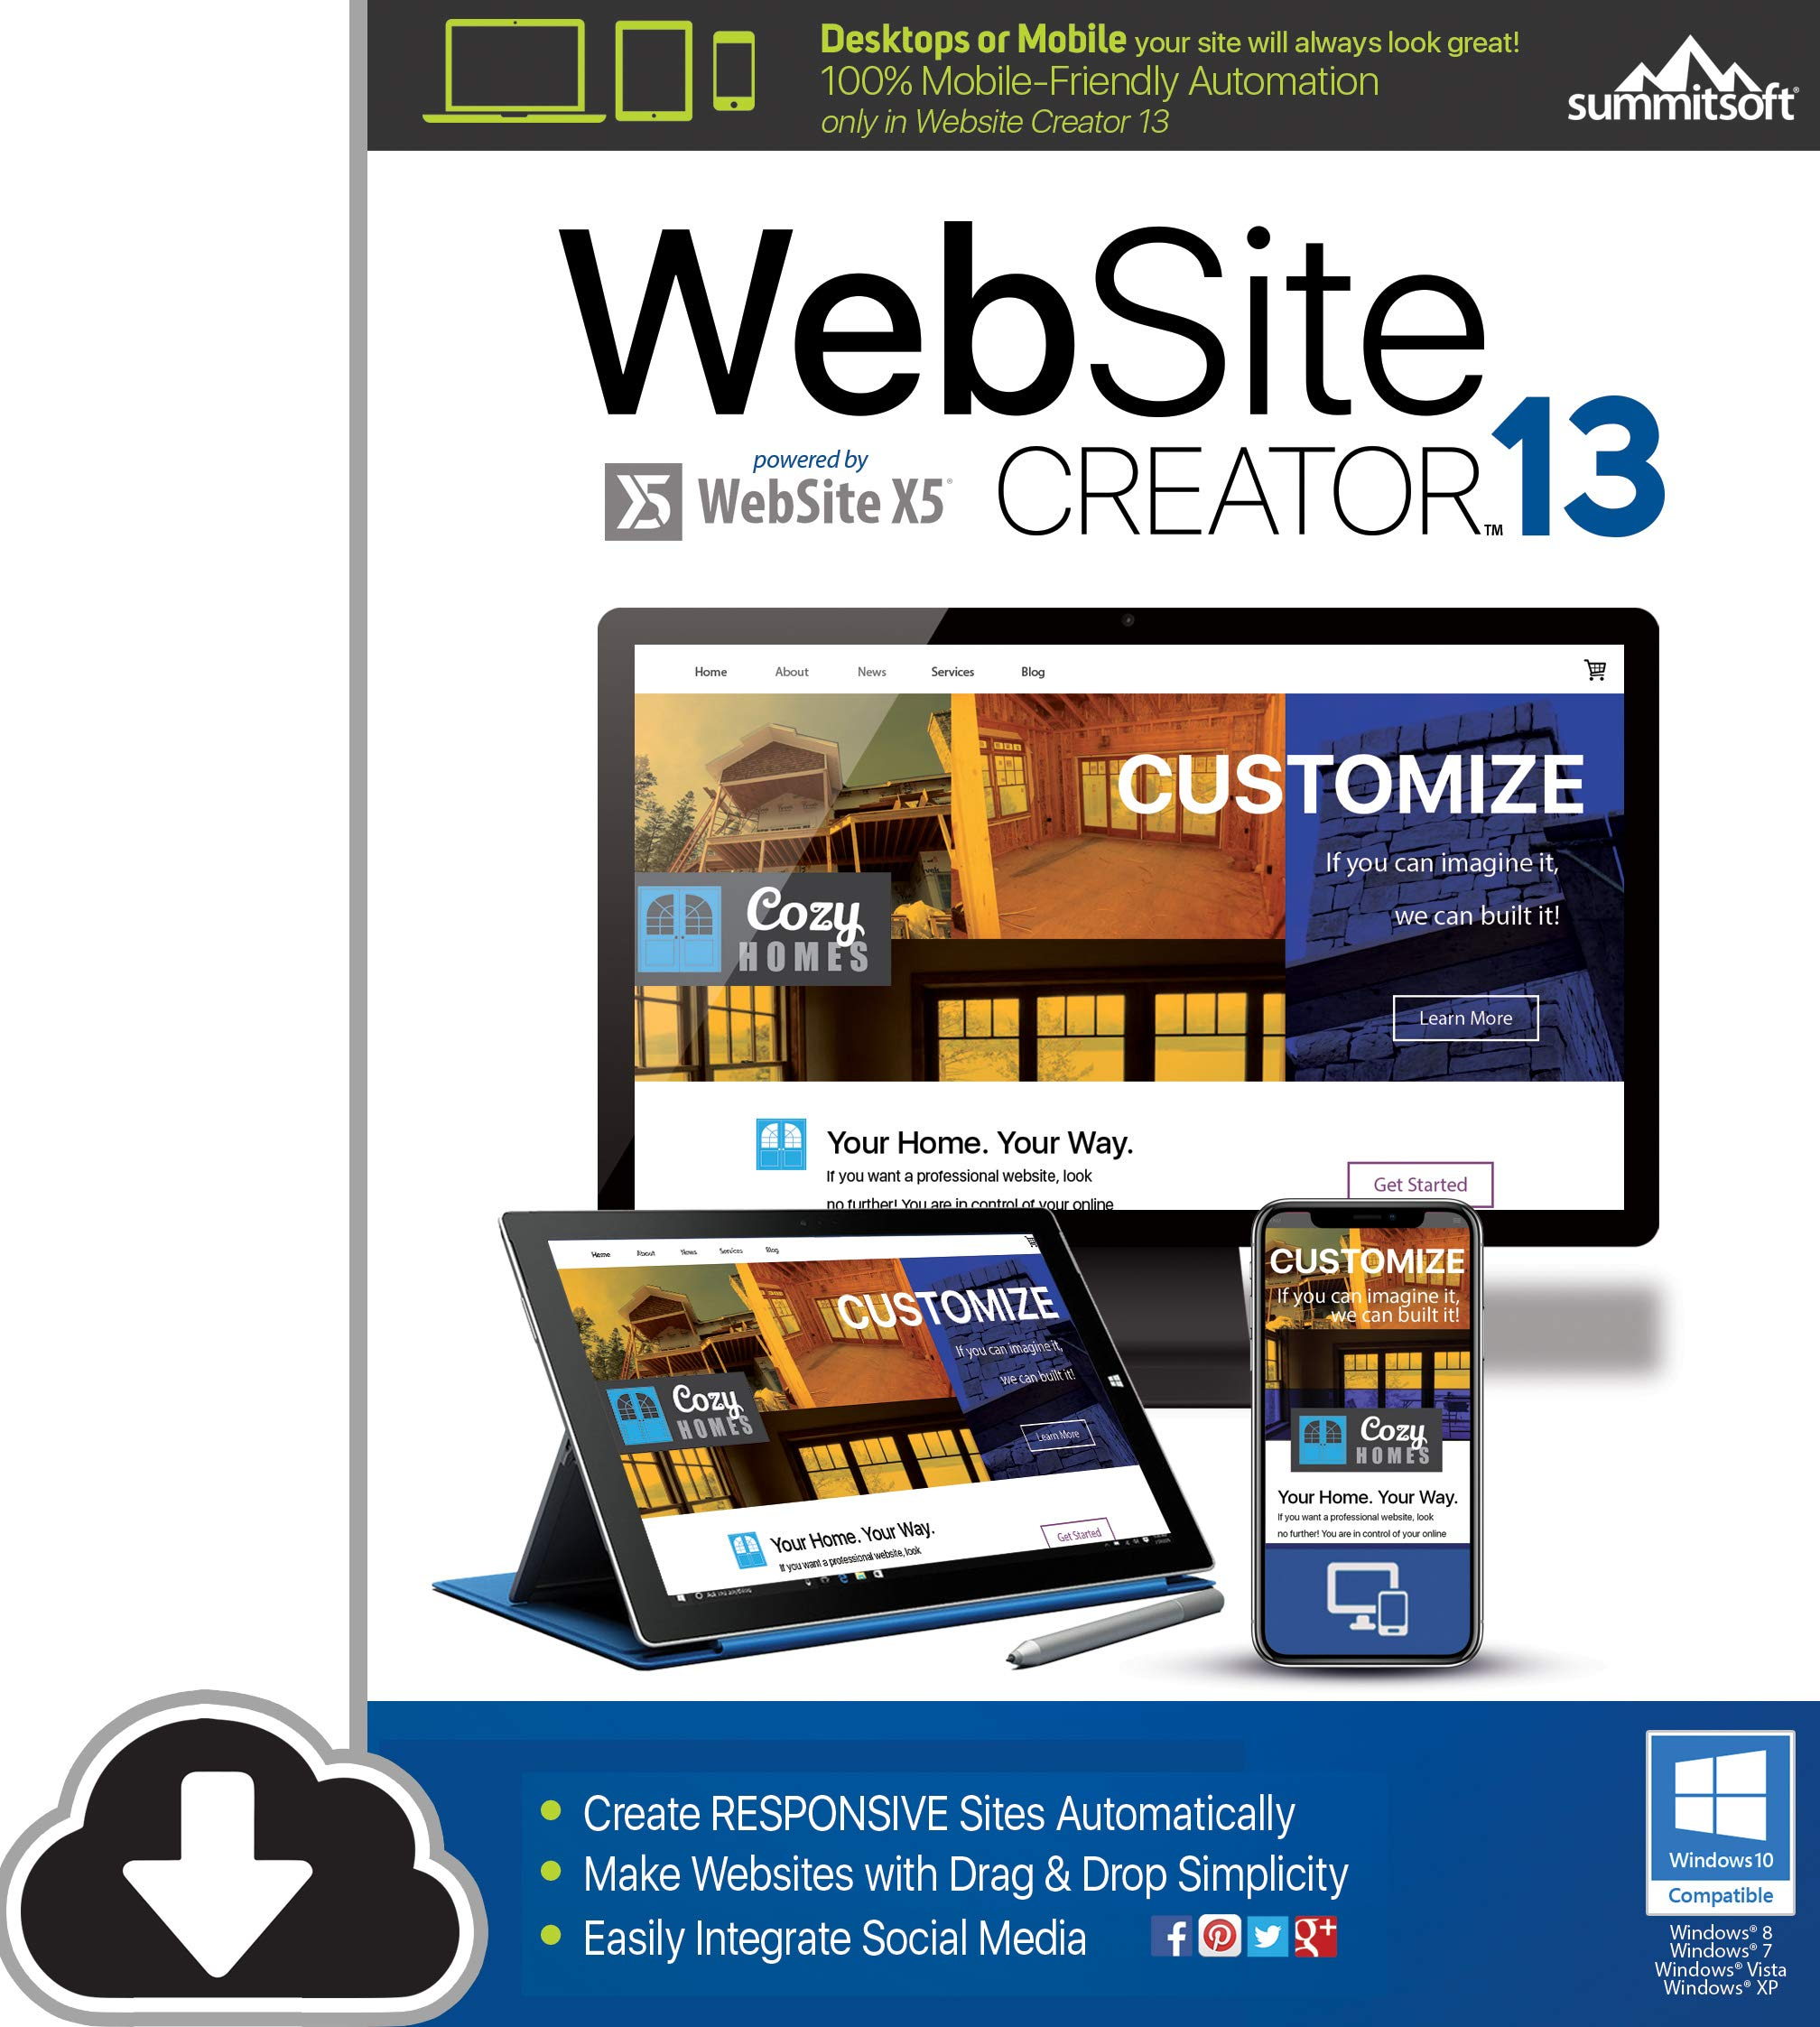 Website Creator 13 [PC Download] by Summitsoft